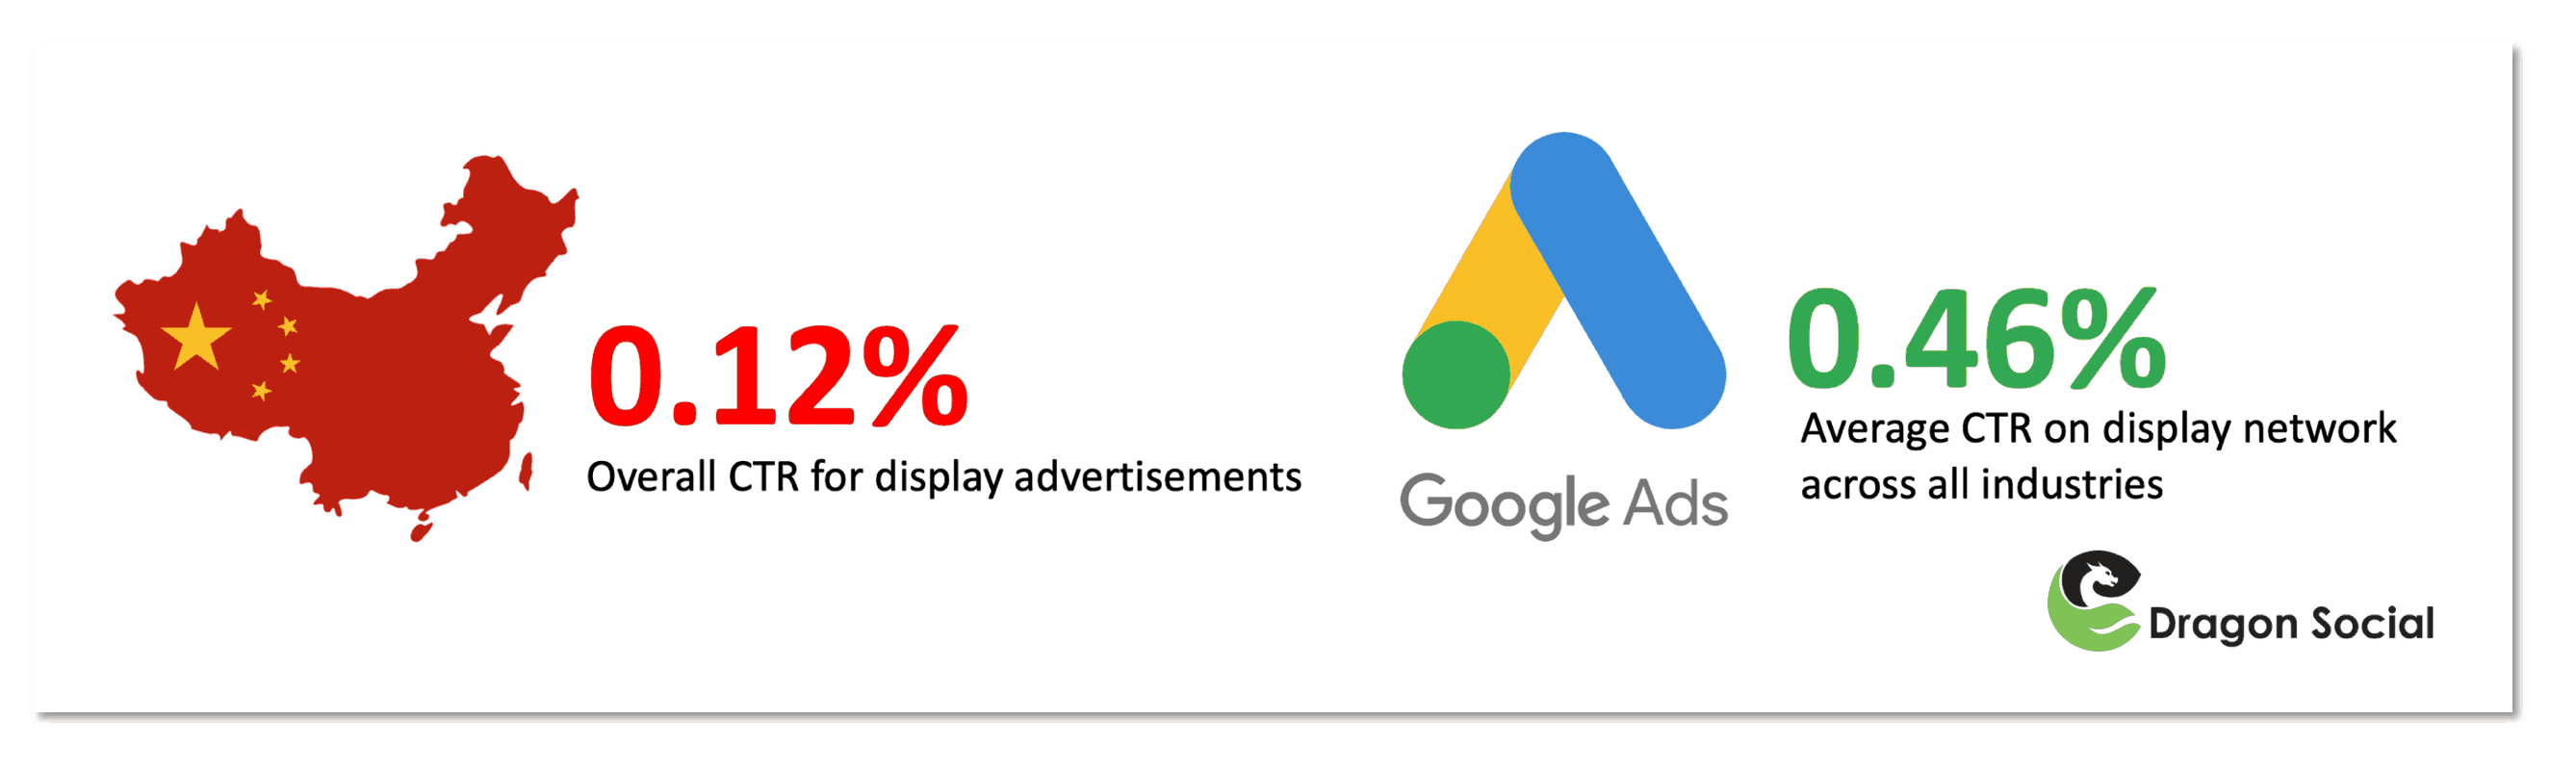 Display advertising has seen declining click-through rates as compared to KOL marketing